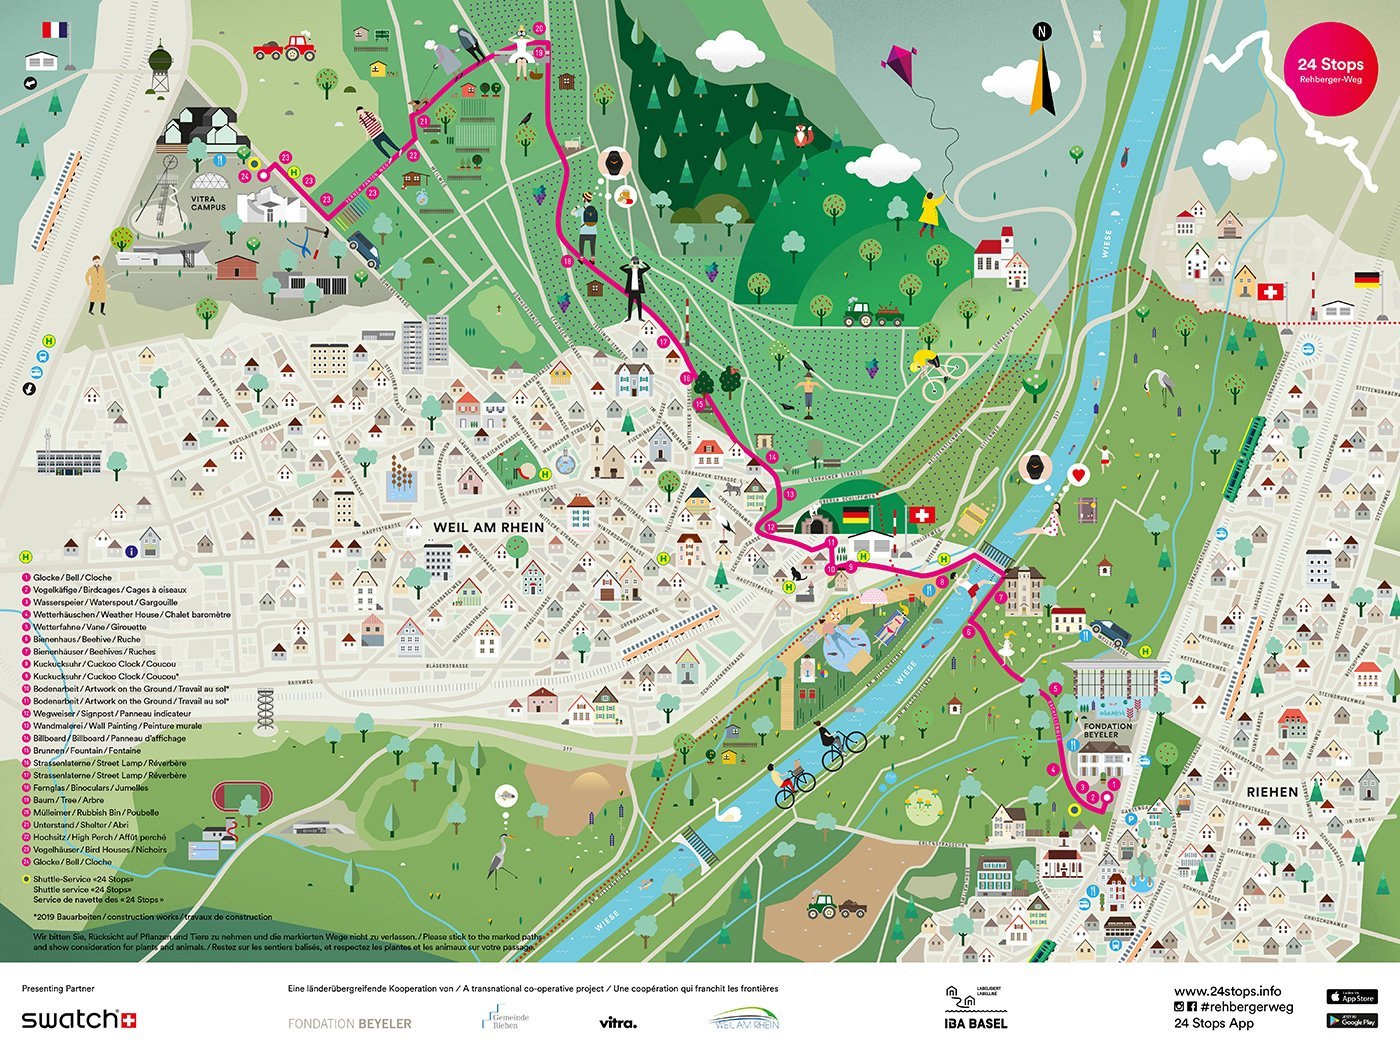 24 Stops Map – Vitra & Foundation Beyeler Collaboration